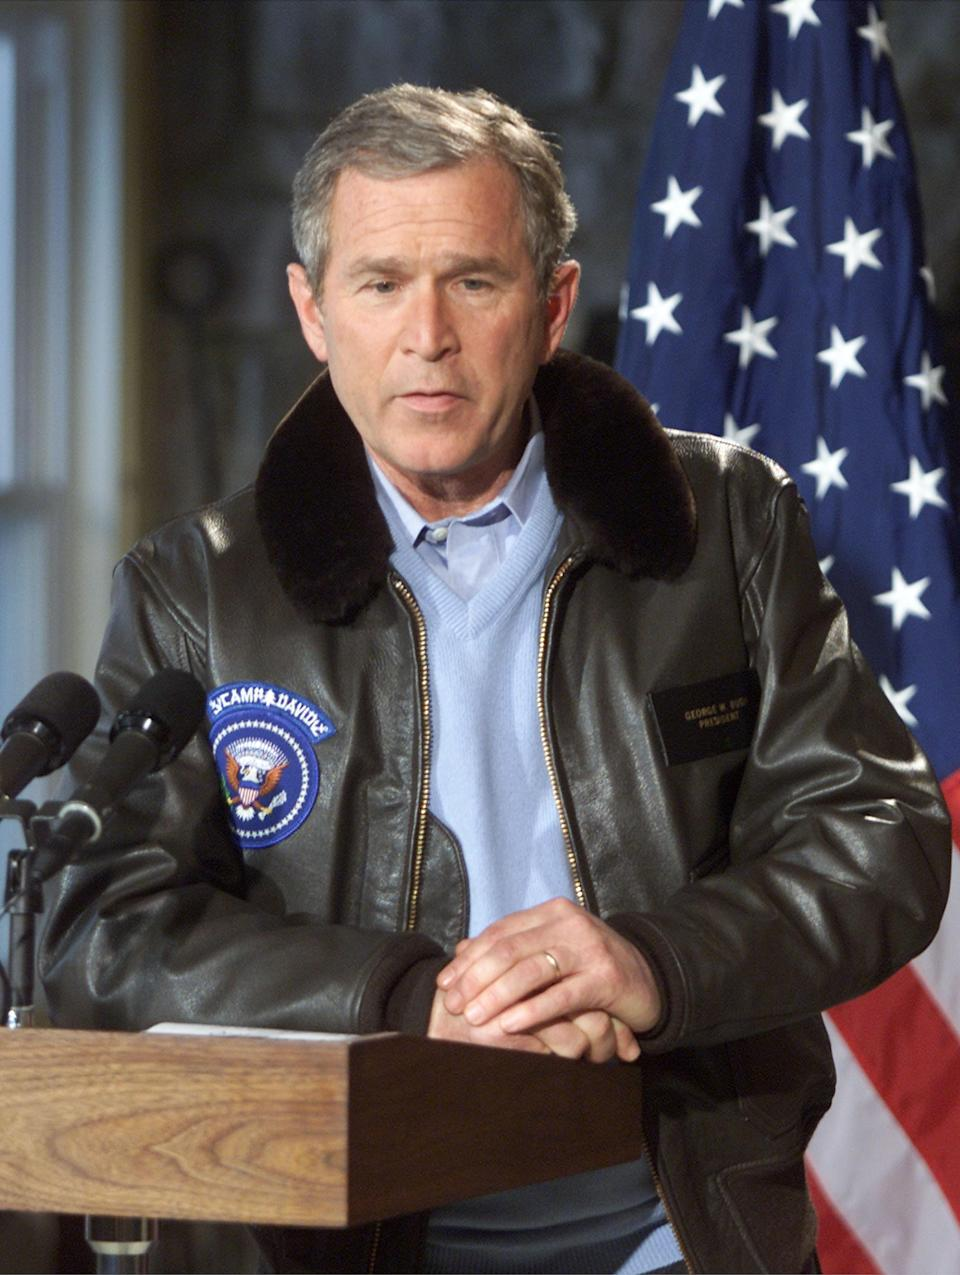 The 43rd president of the United States, George W. Bush, during a news conference with British Prime Minister, Tony Blair, at Camp David in Maryland, February 23, 2001.